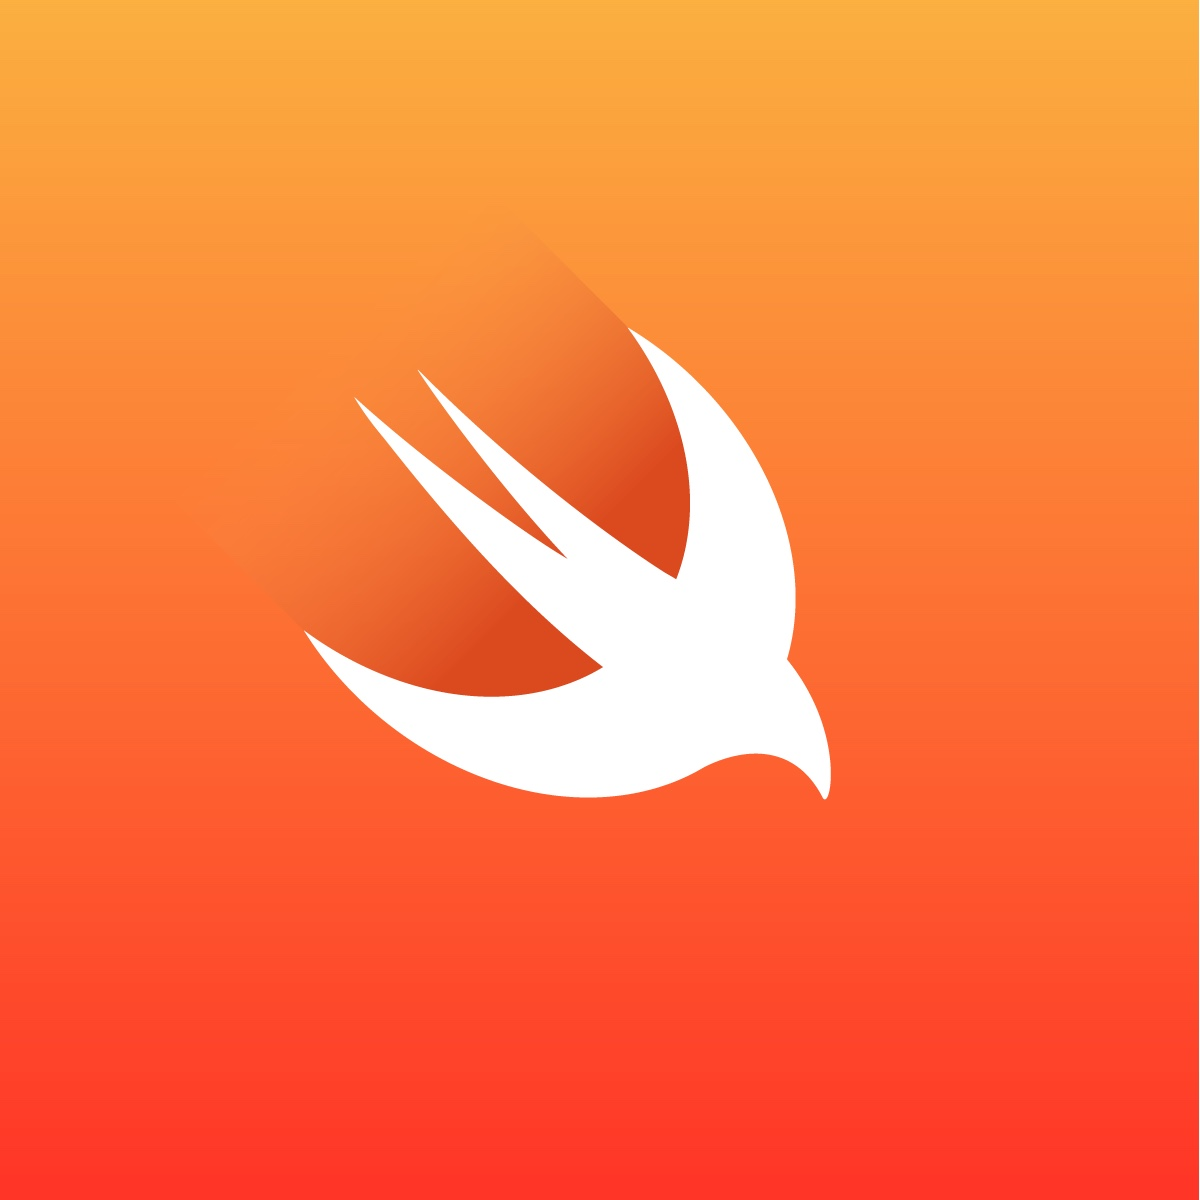 A Swift update